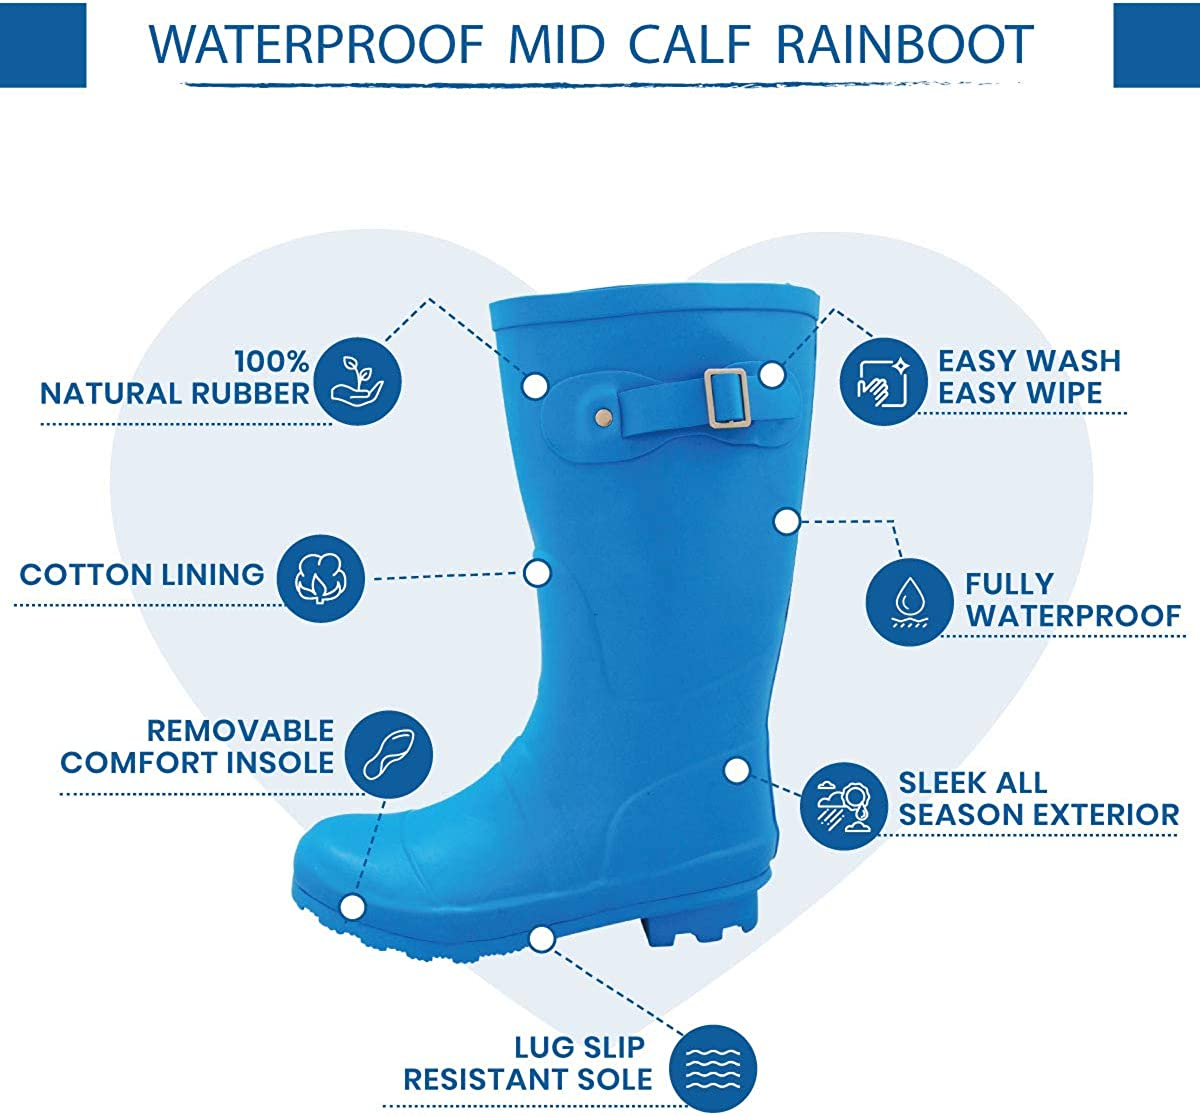 NORTY Womens Hurricane Wellie Glossy /& Matte Waterproof Mid-Calf Rainboots Solids and Prints